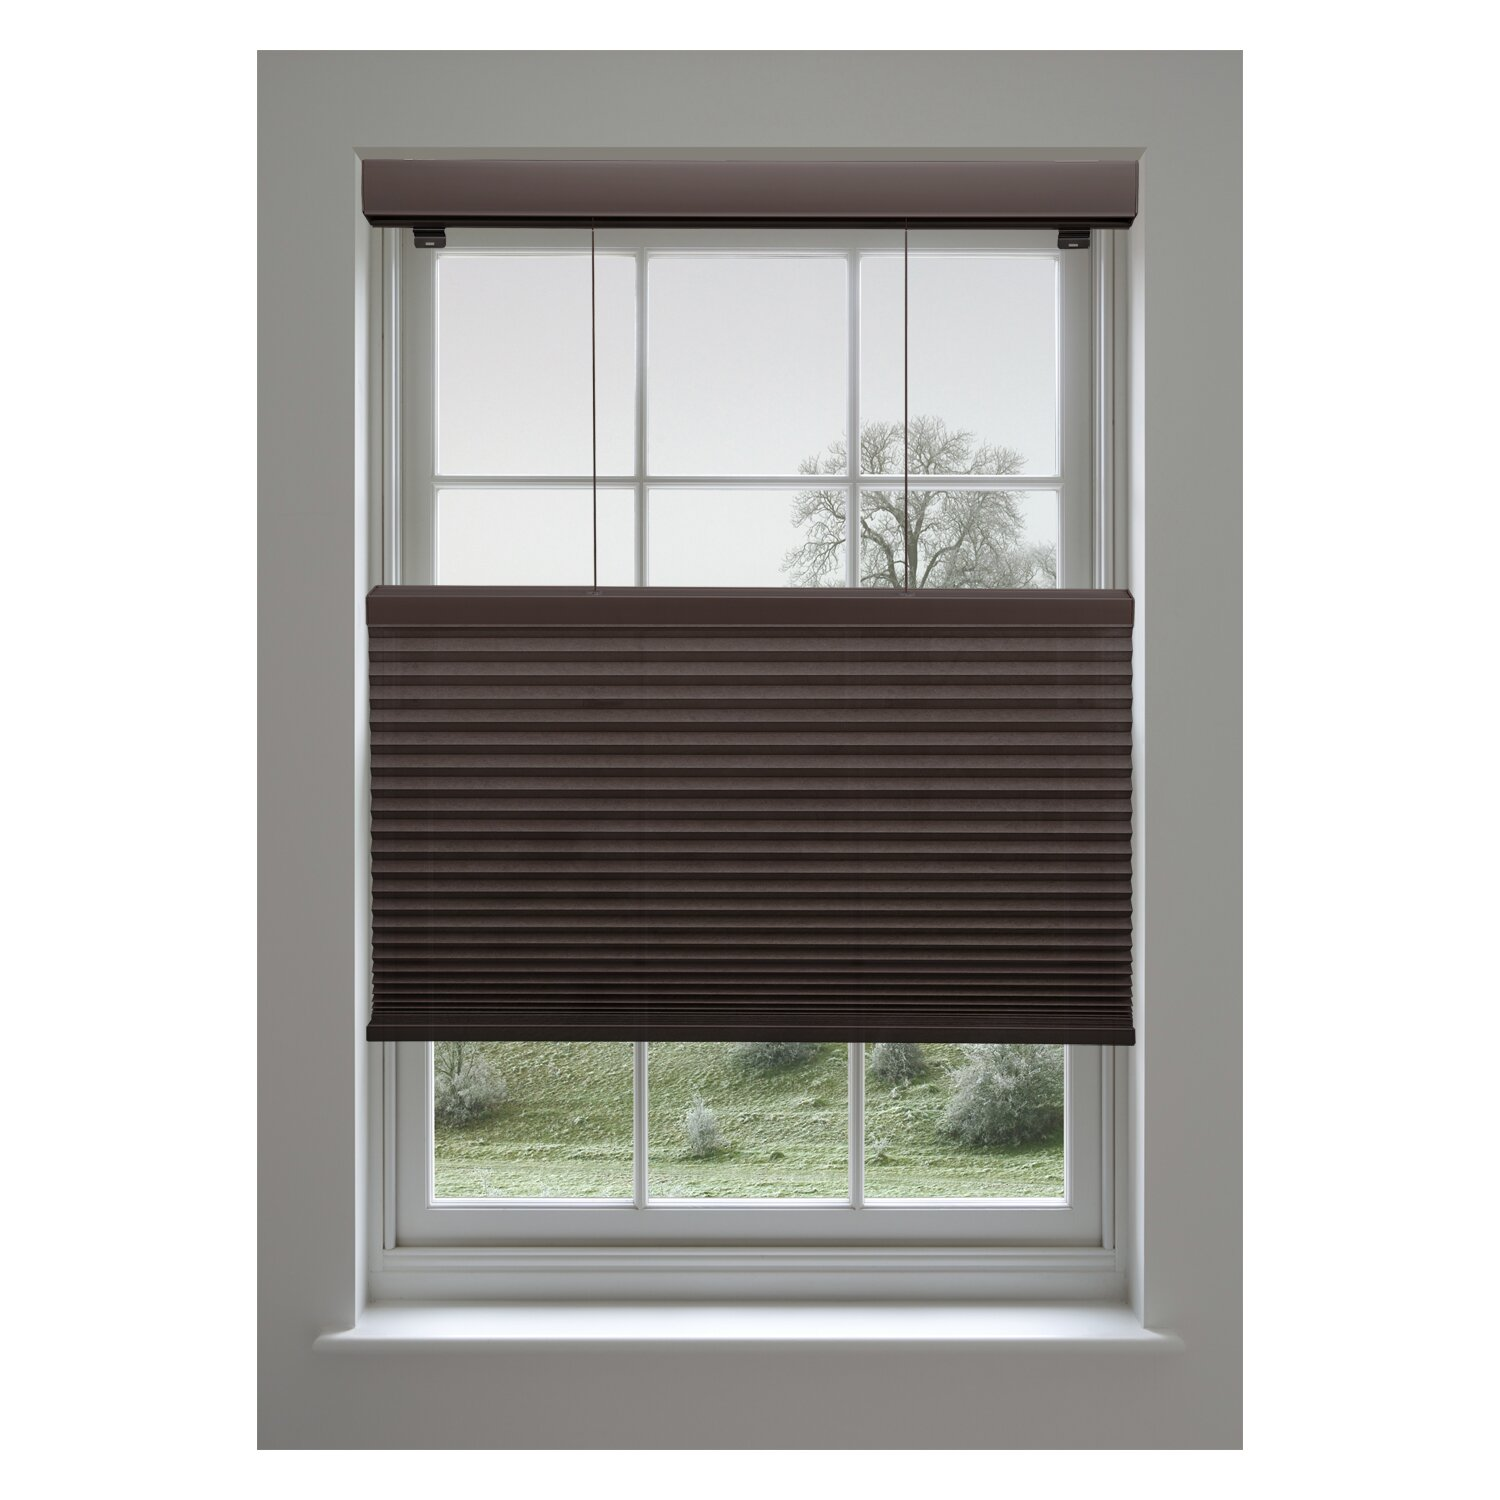 Image Result For Next Day Blinds Reviews